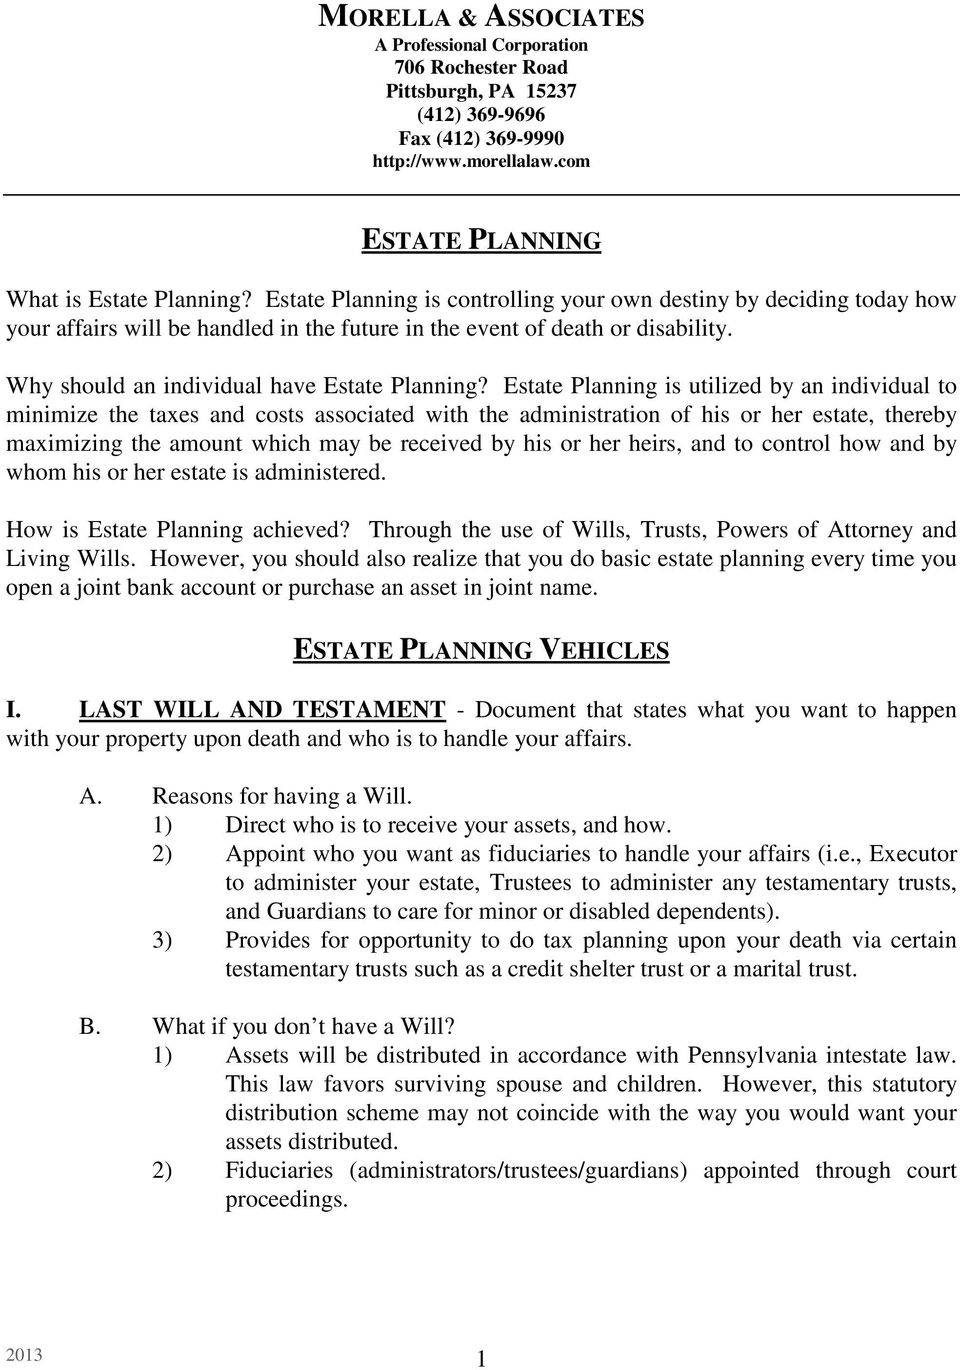 Estate Planning is utilized by an individual to minimize the taxes and costs associated with the administration of his or her estate, thereby maximizing the amount which may be received by his or her